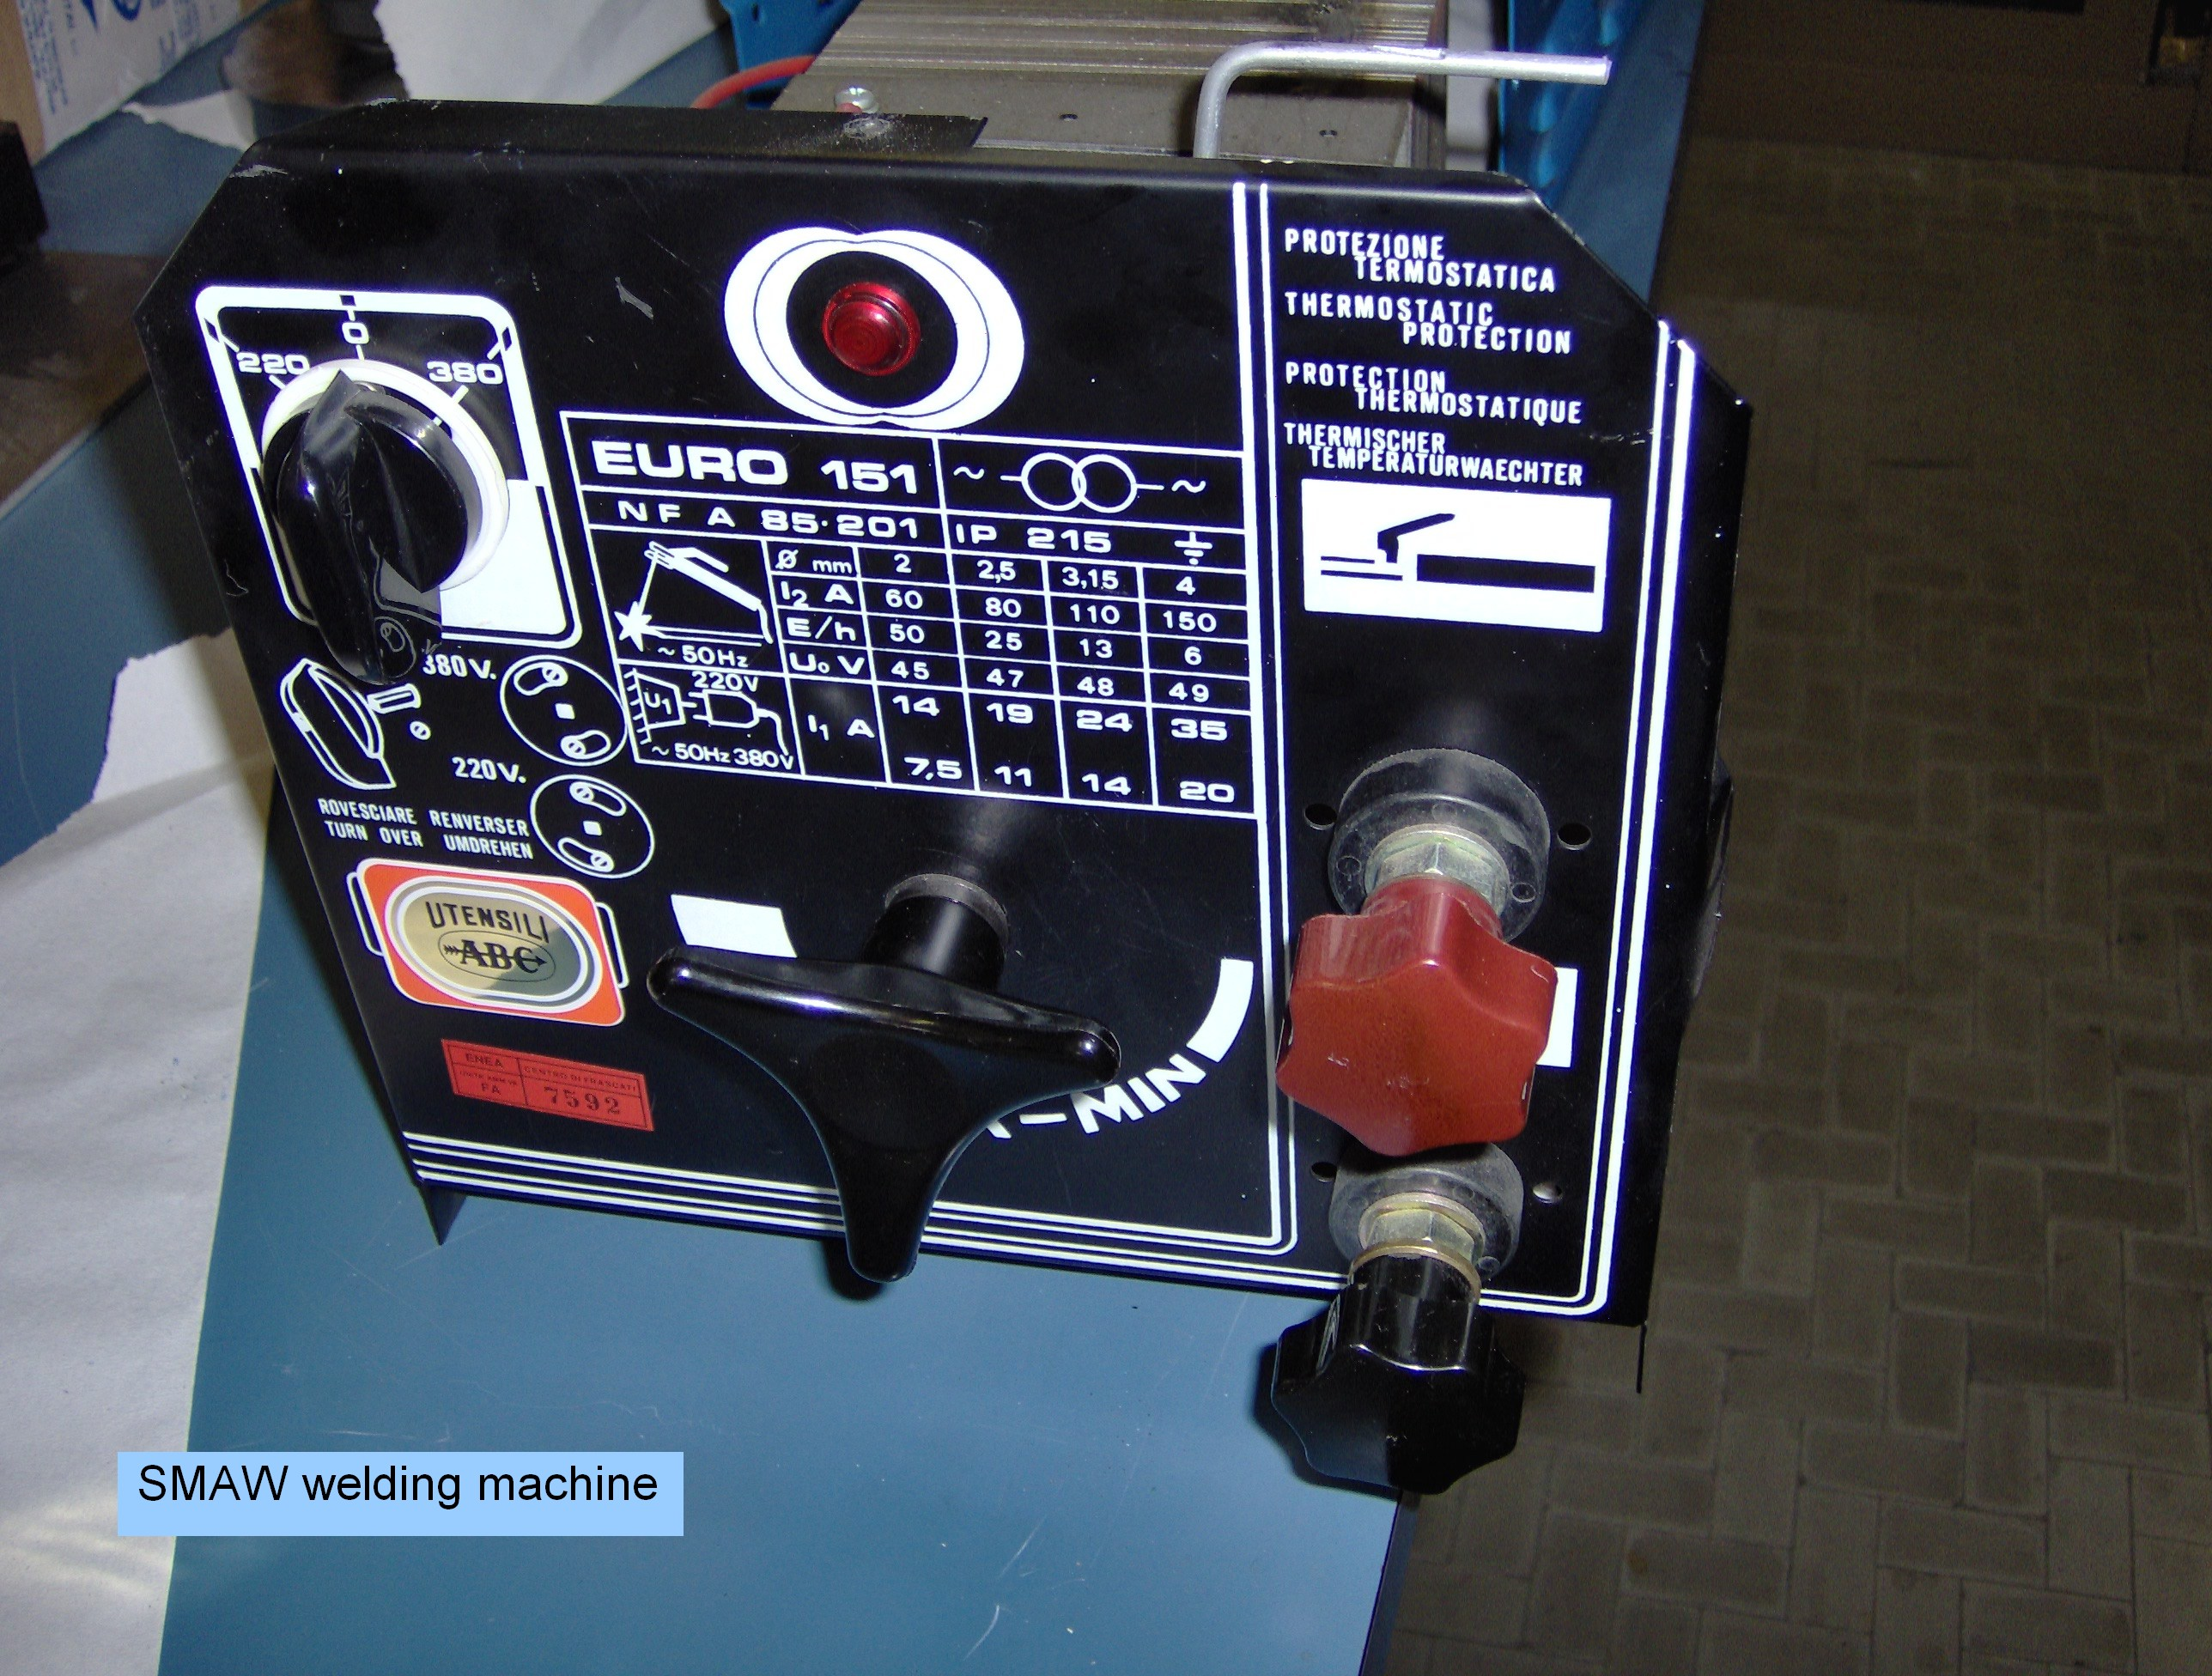 Welding SMAW http://commons.wikimedia.org/wiki/File:SMAW_Welding_machine-1.jpg